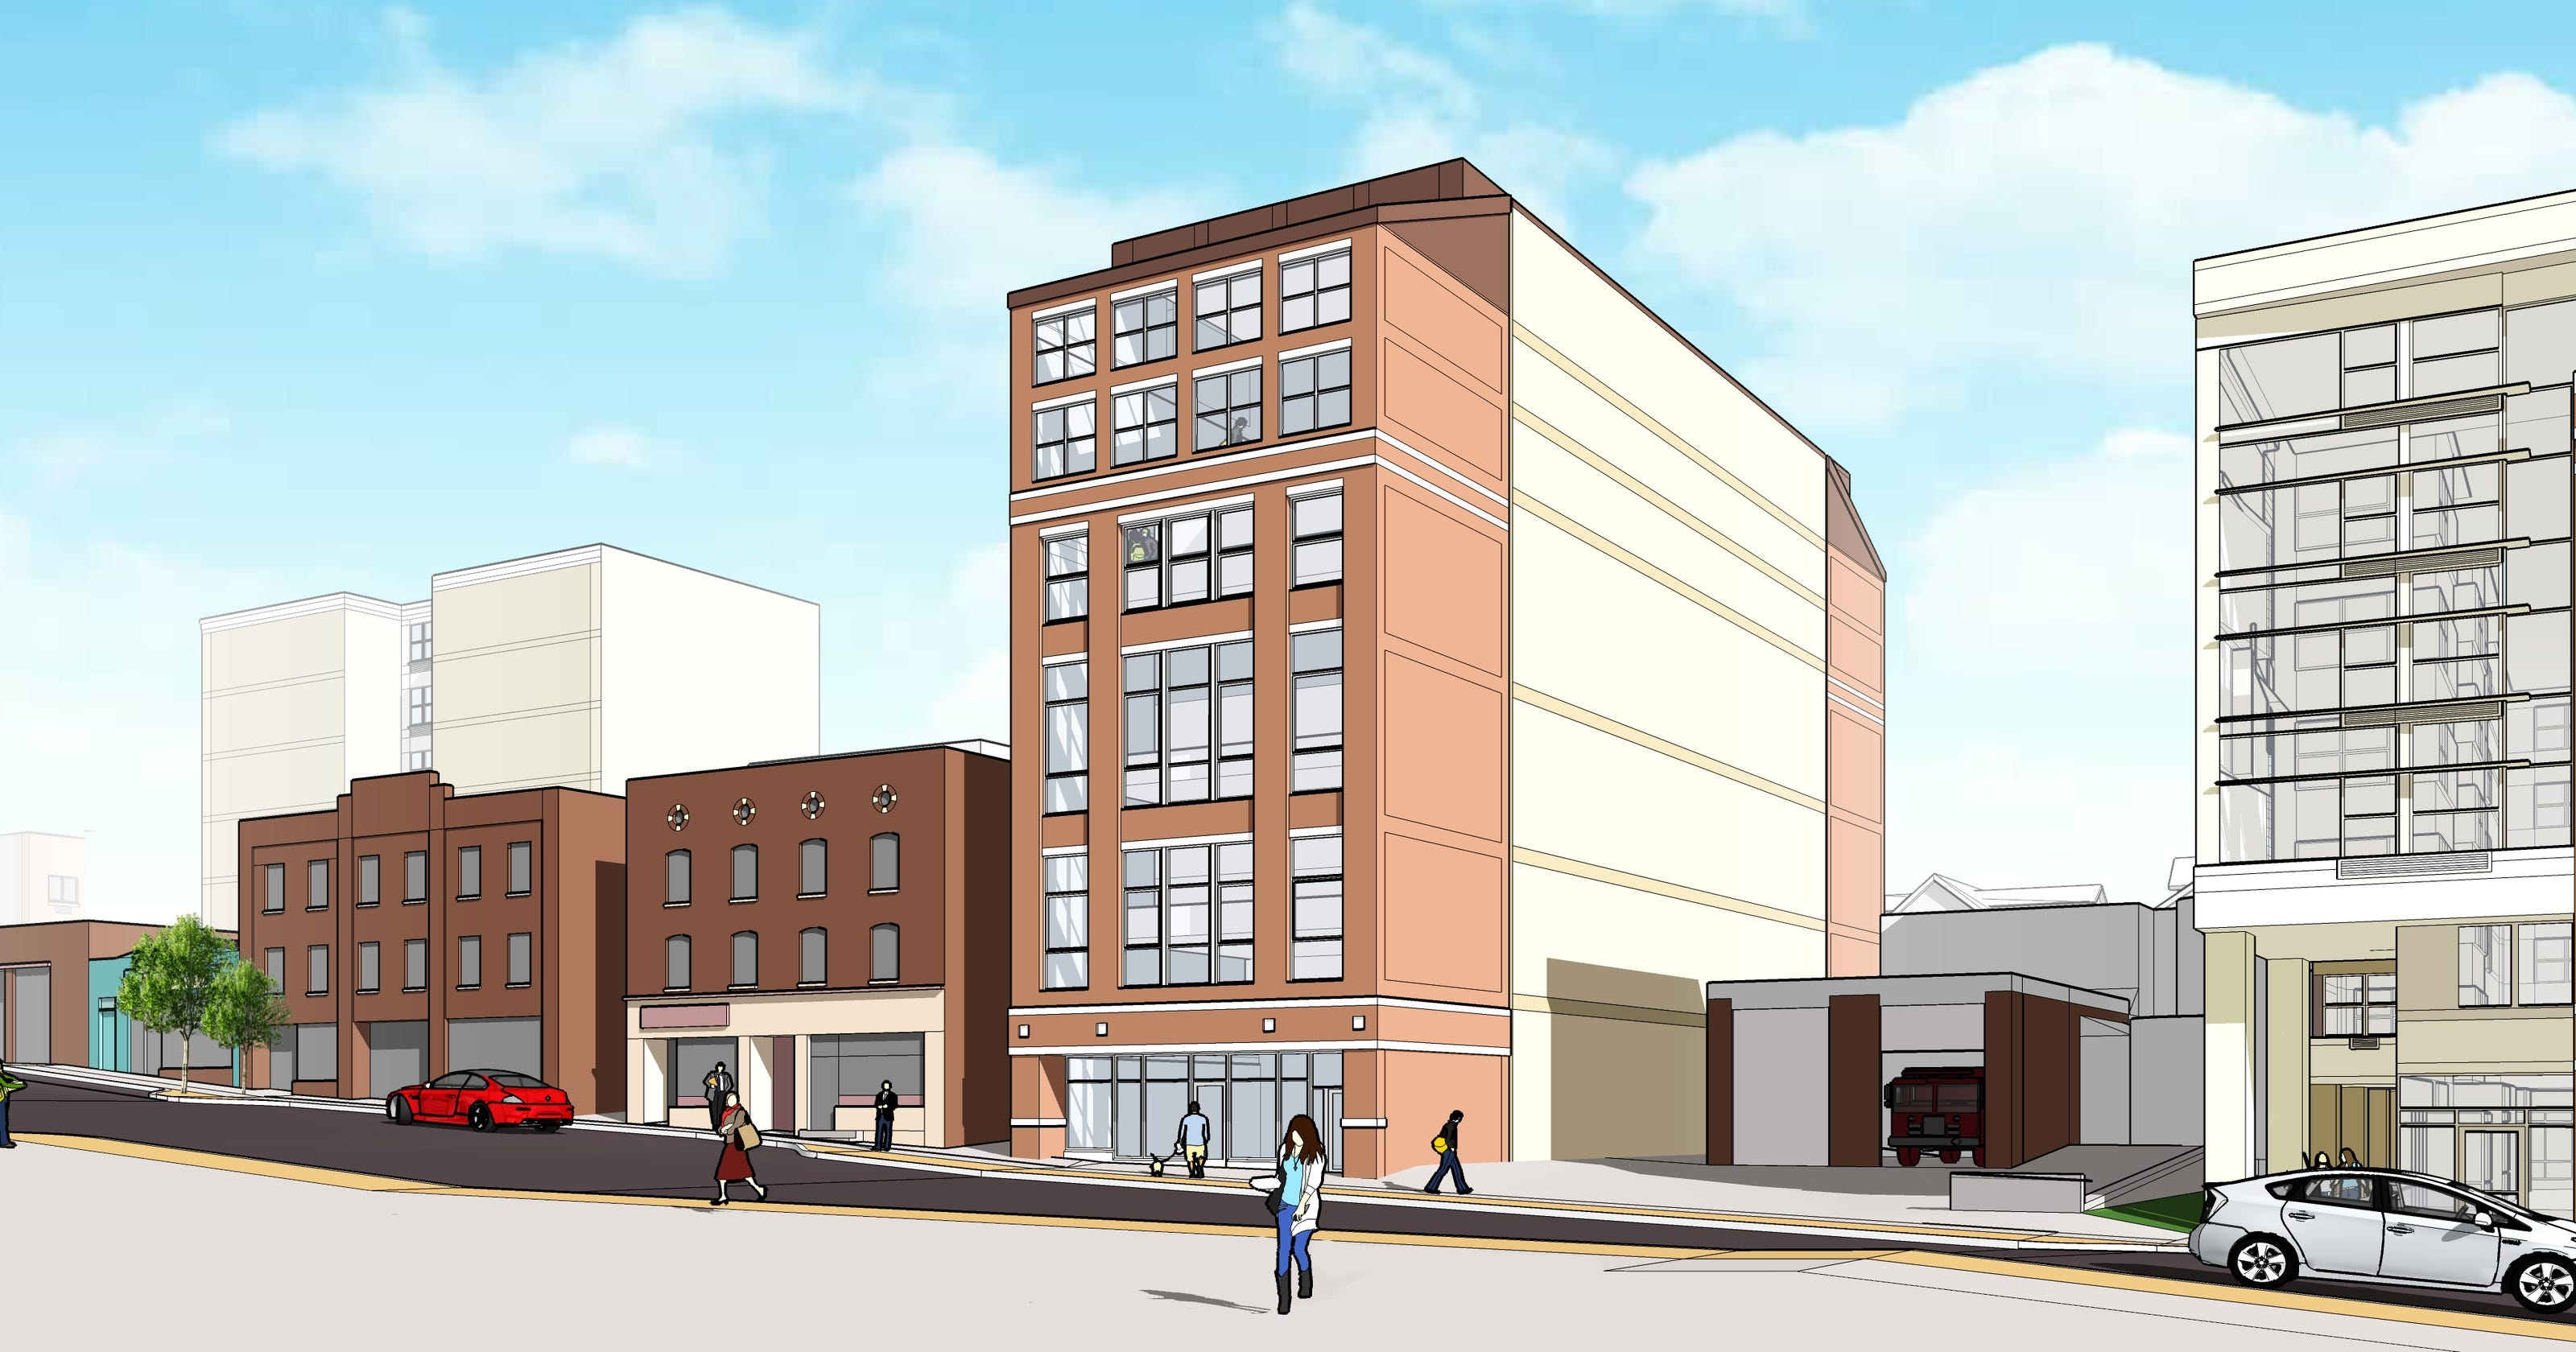 The Nines faces demolition under Collegetown apartment proposal